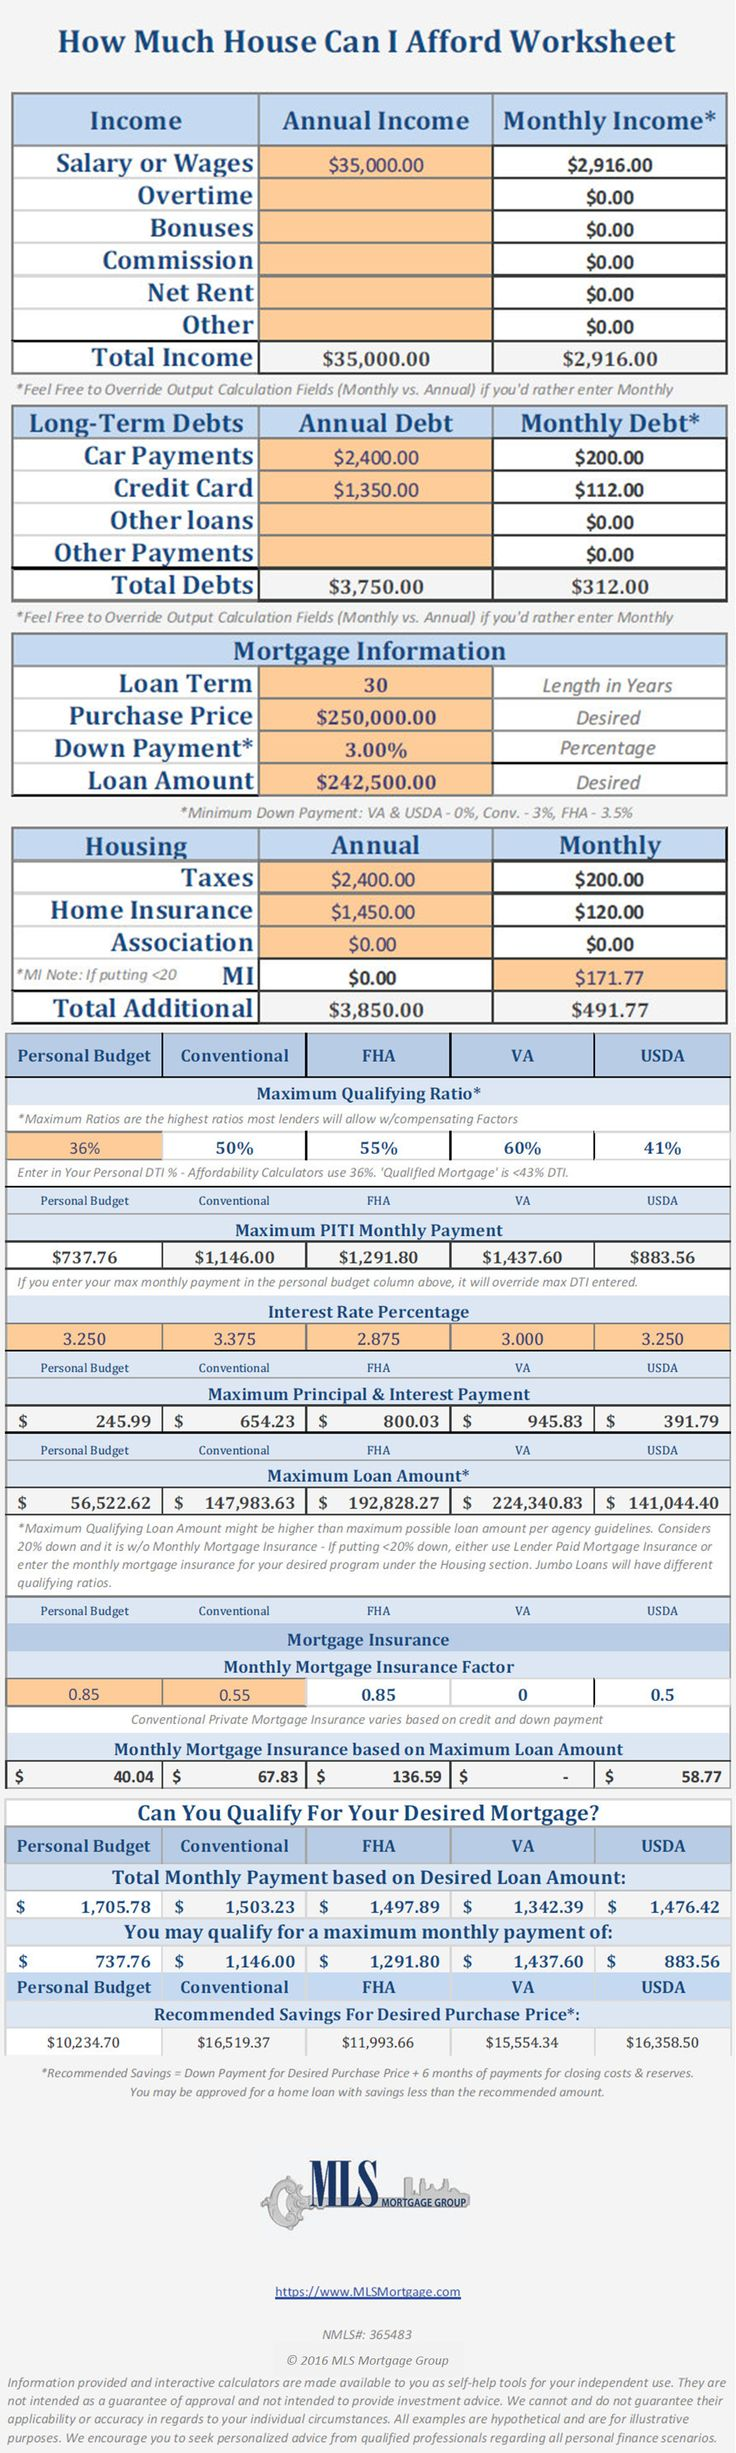 Home Loan Comparison Spreadsheet Templates Free